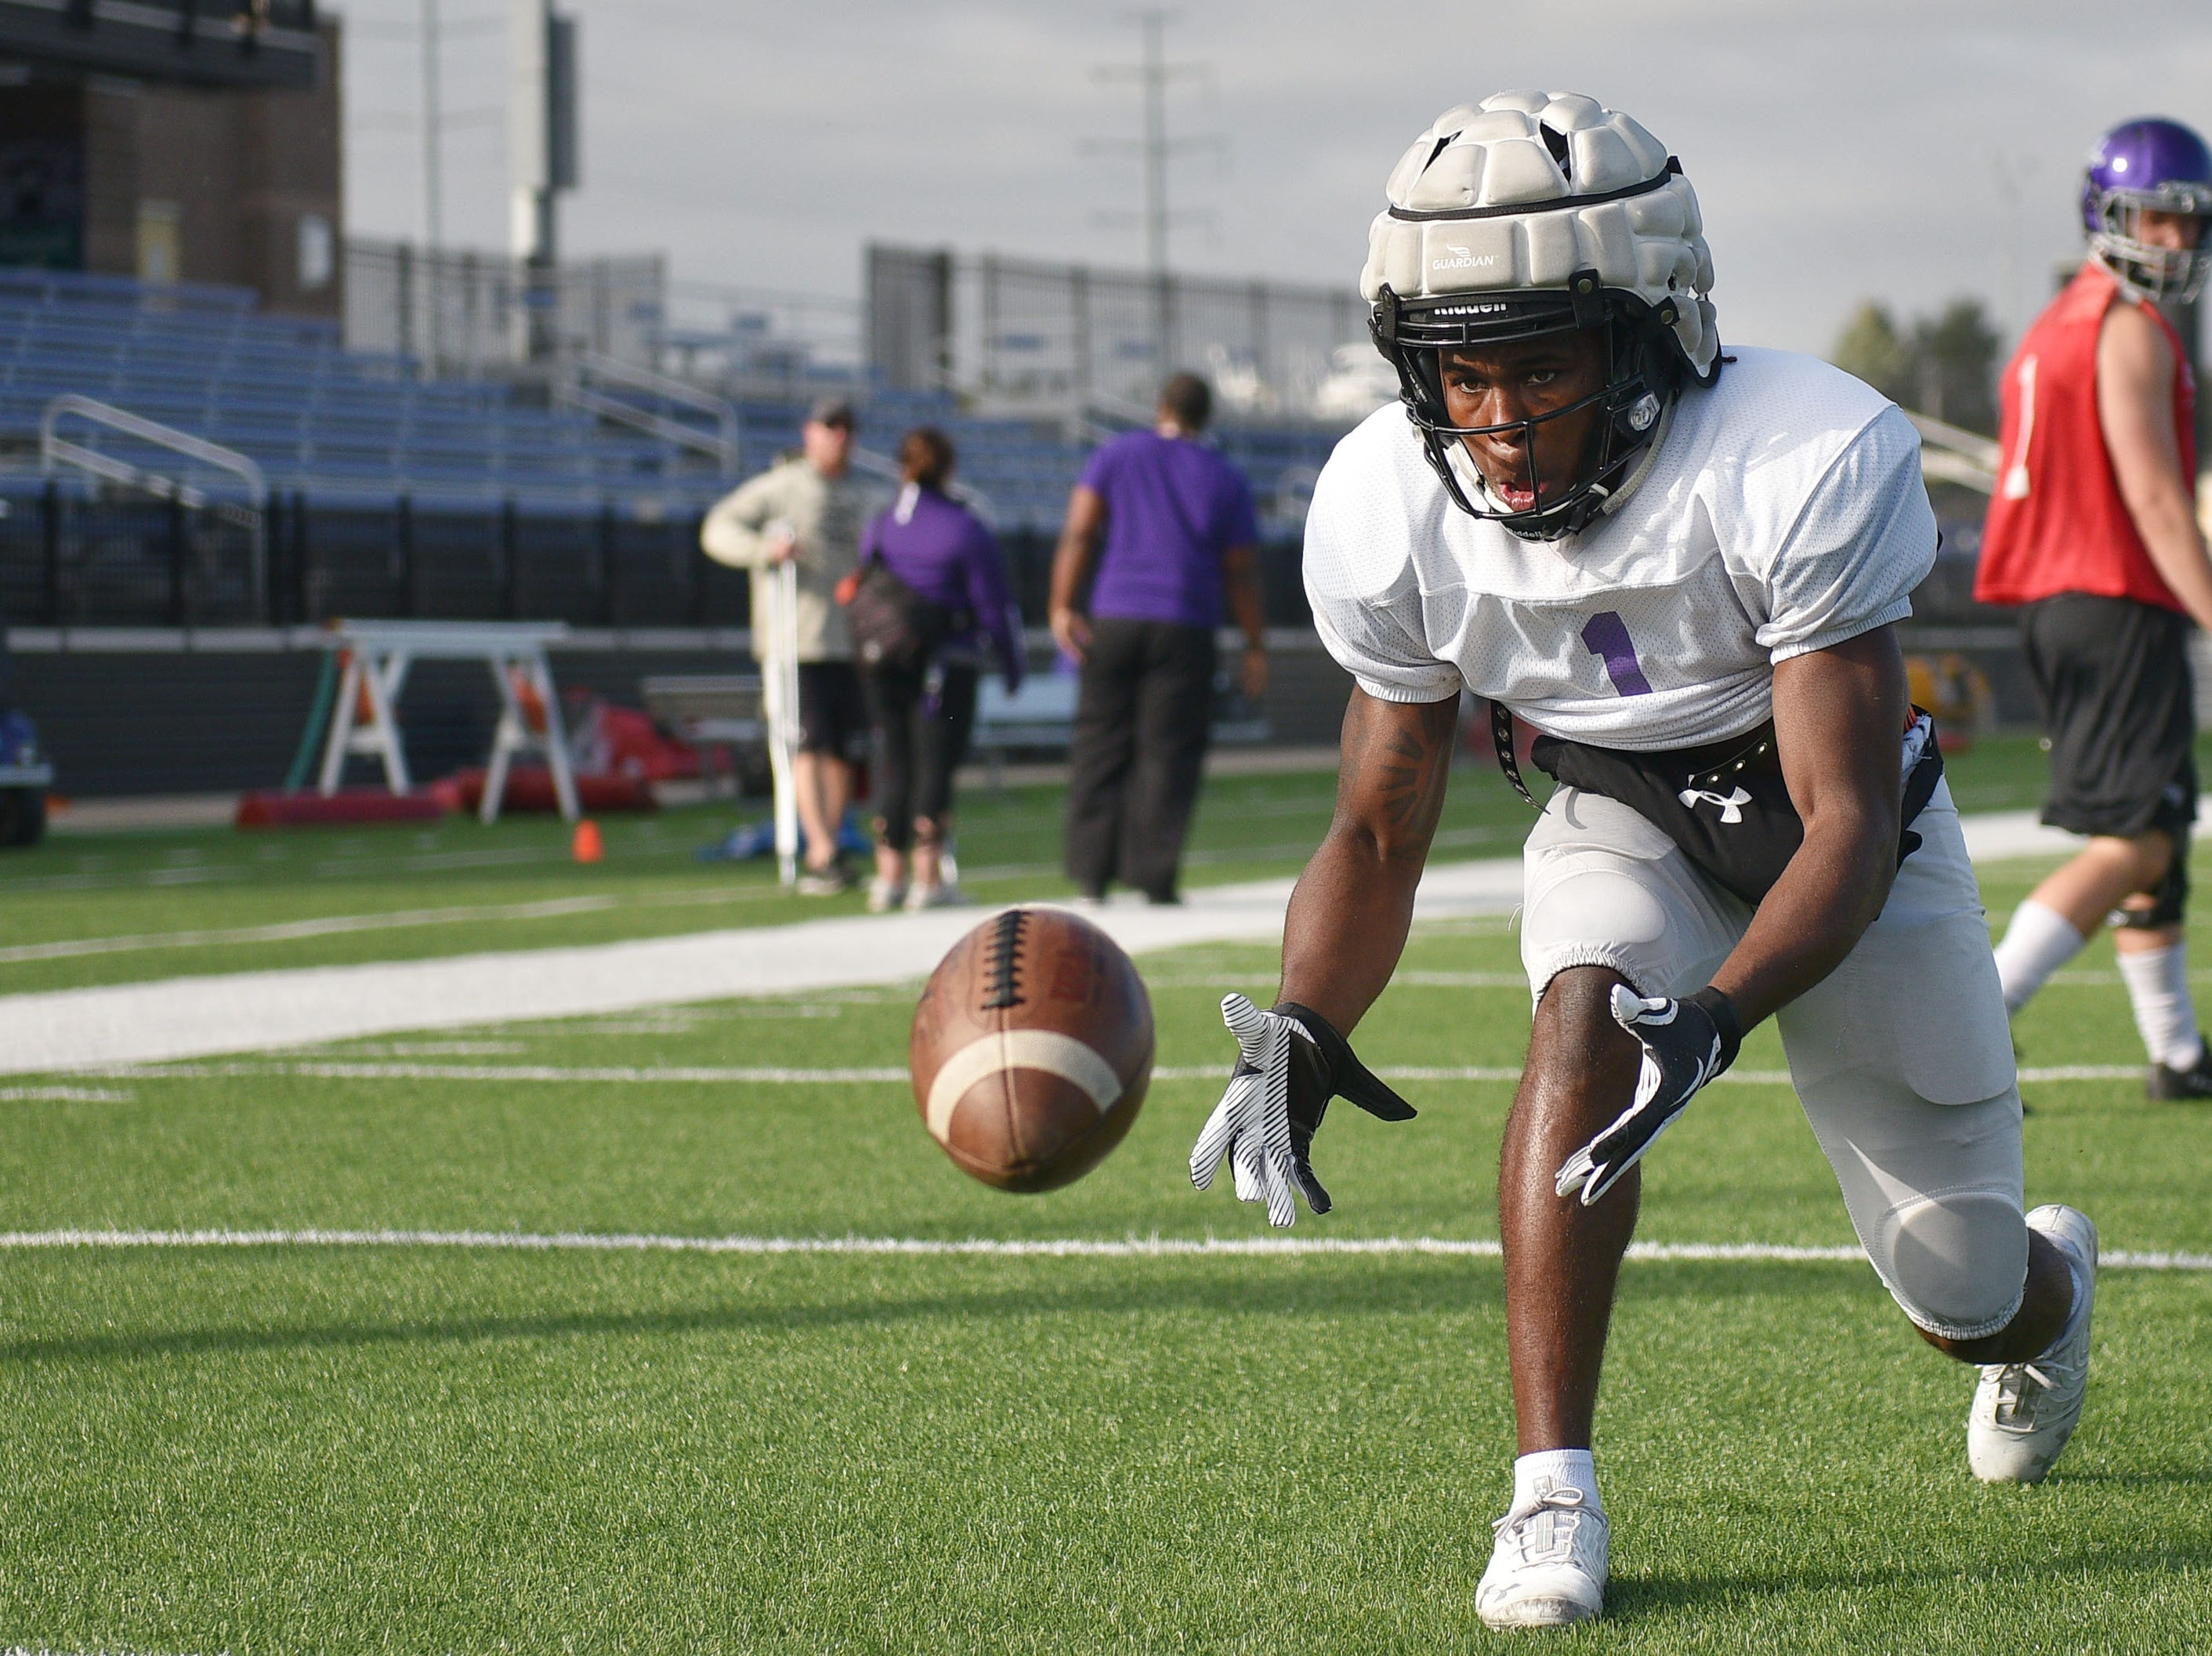 USF's Michael Maxwell during practice Wednesday, Oct. 3, at Bob Young field.